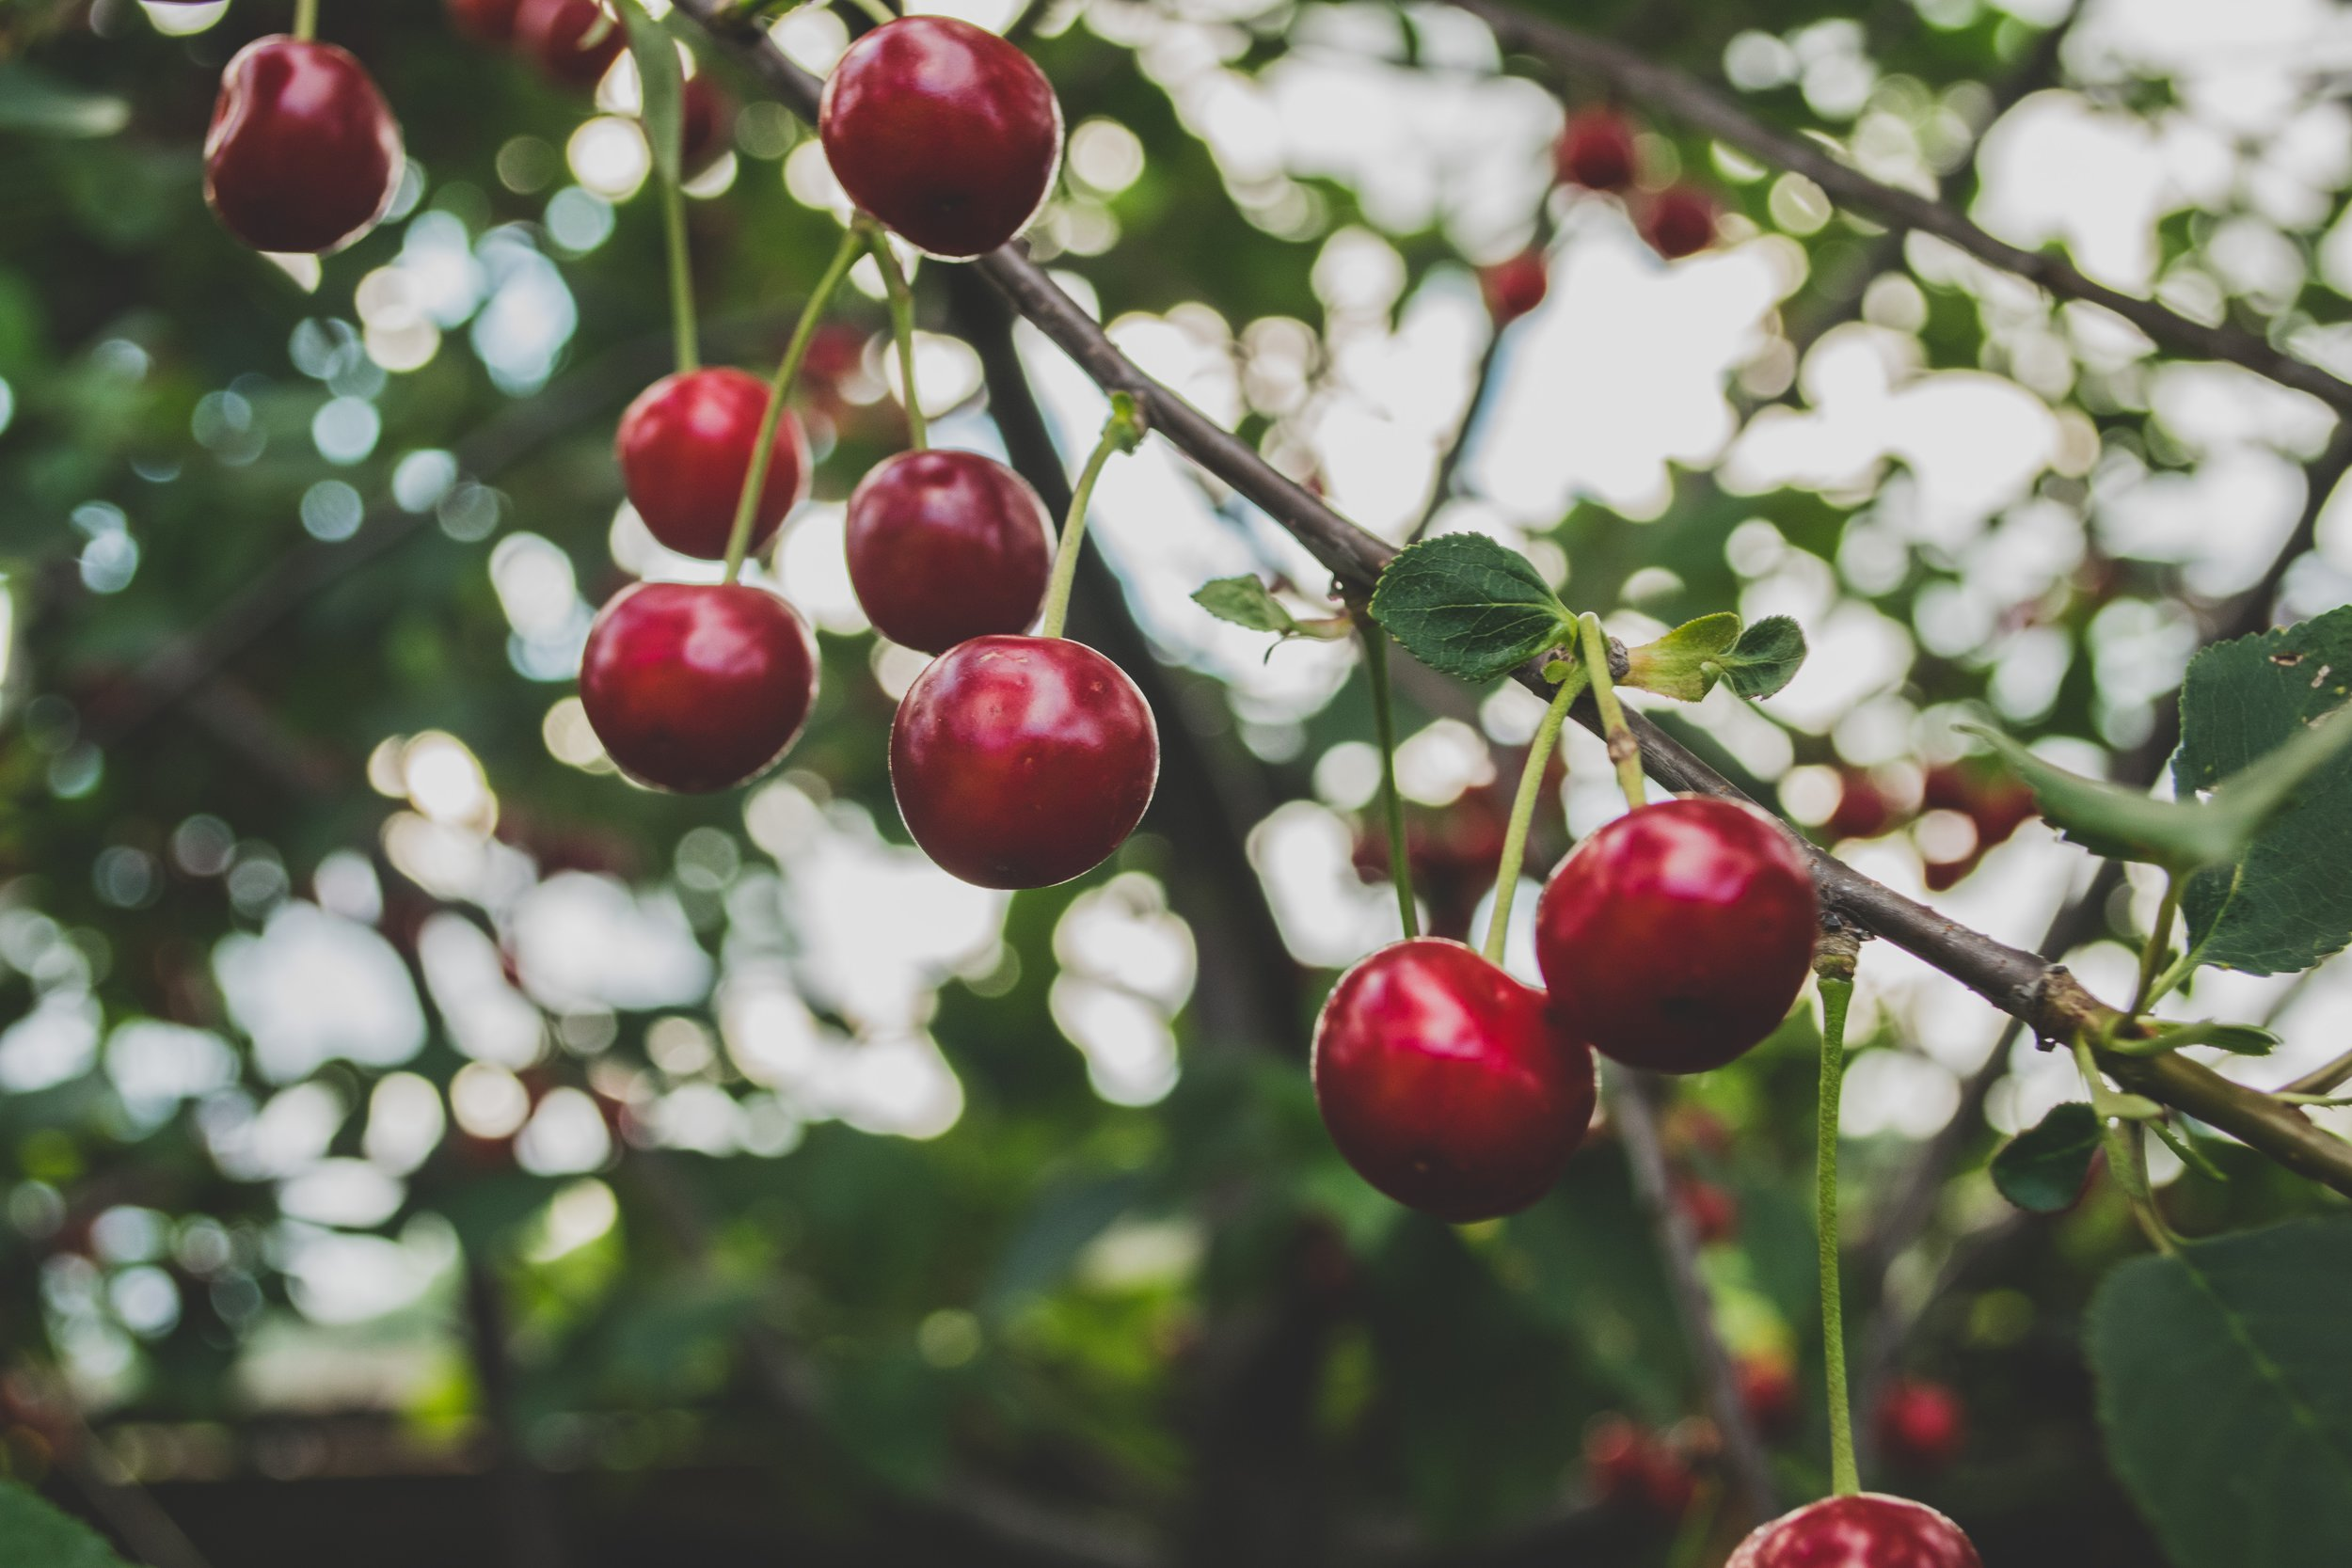 CHERRIES - The sweeties of our fruit, we grow varieties such as Kordia, Lapins, Penny, Regina, Sasha and Skeena. You can't beat a Great British Cherry.